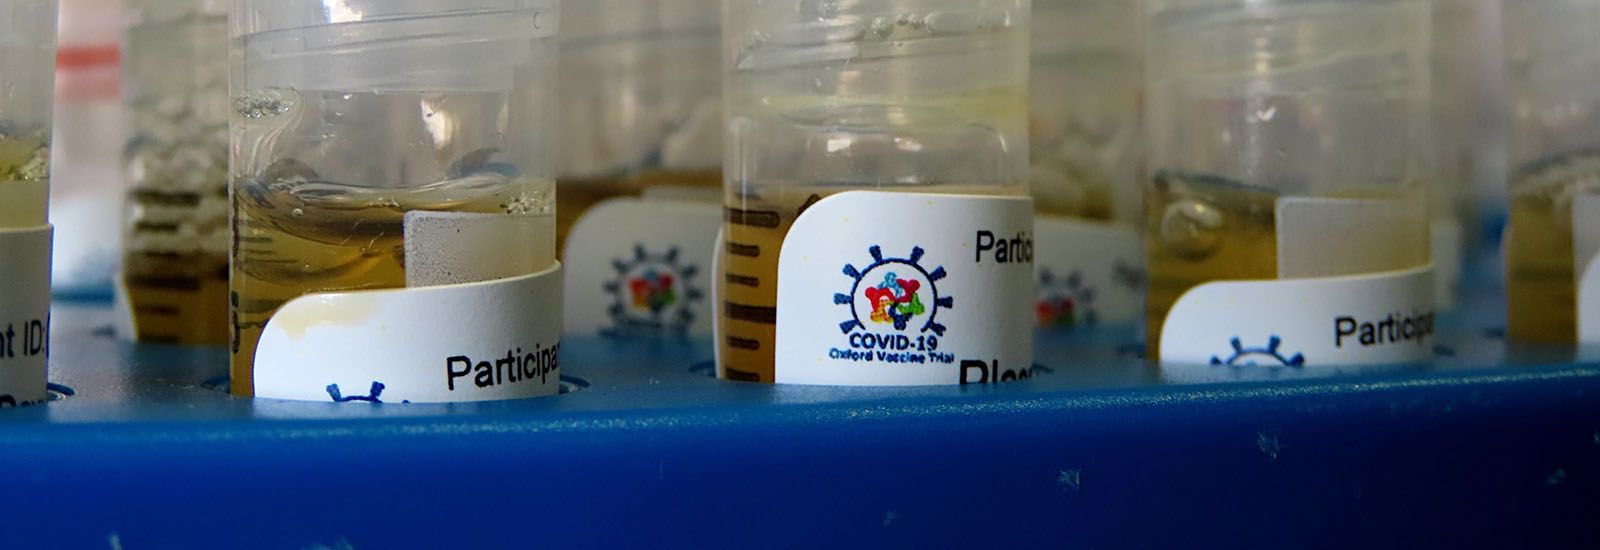 test tubes labelled with Covid-19 Oxford vaccine trial in a laboratory